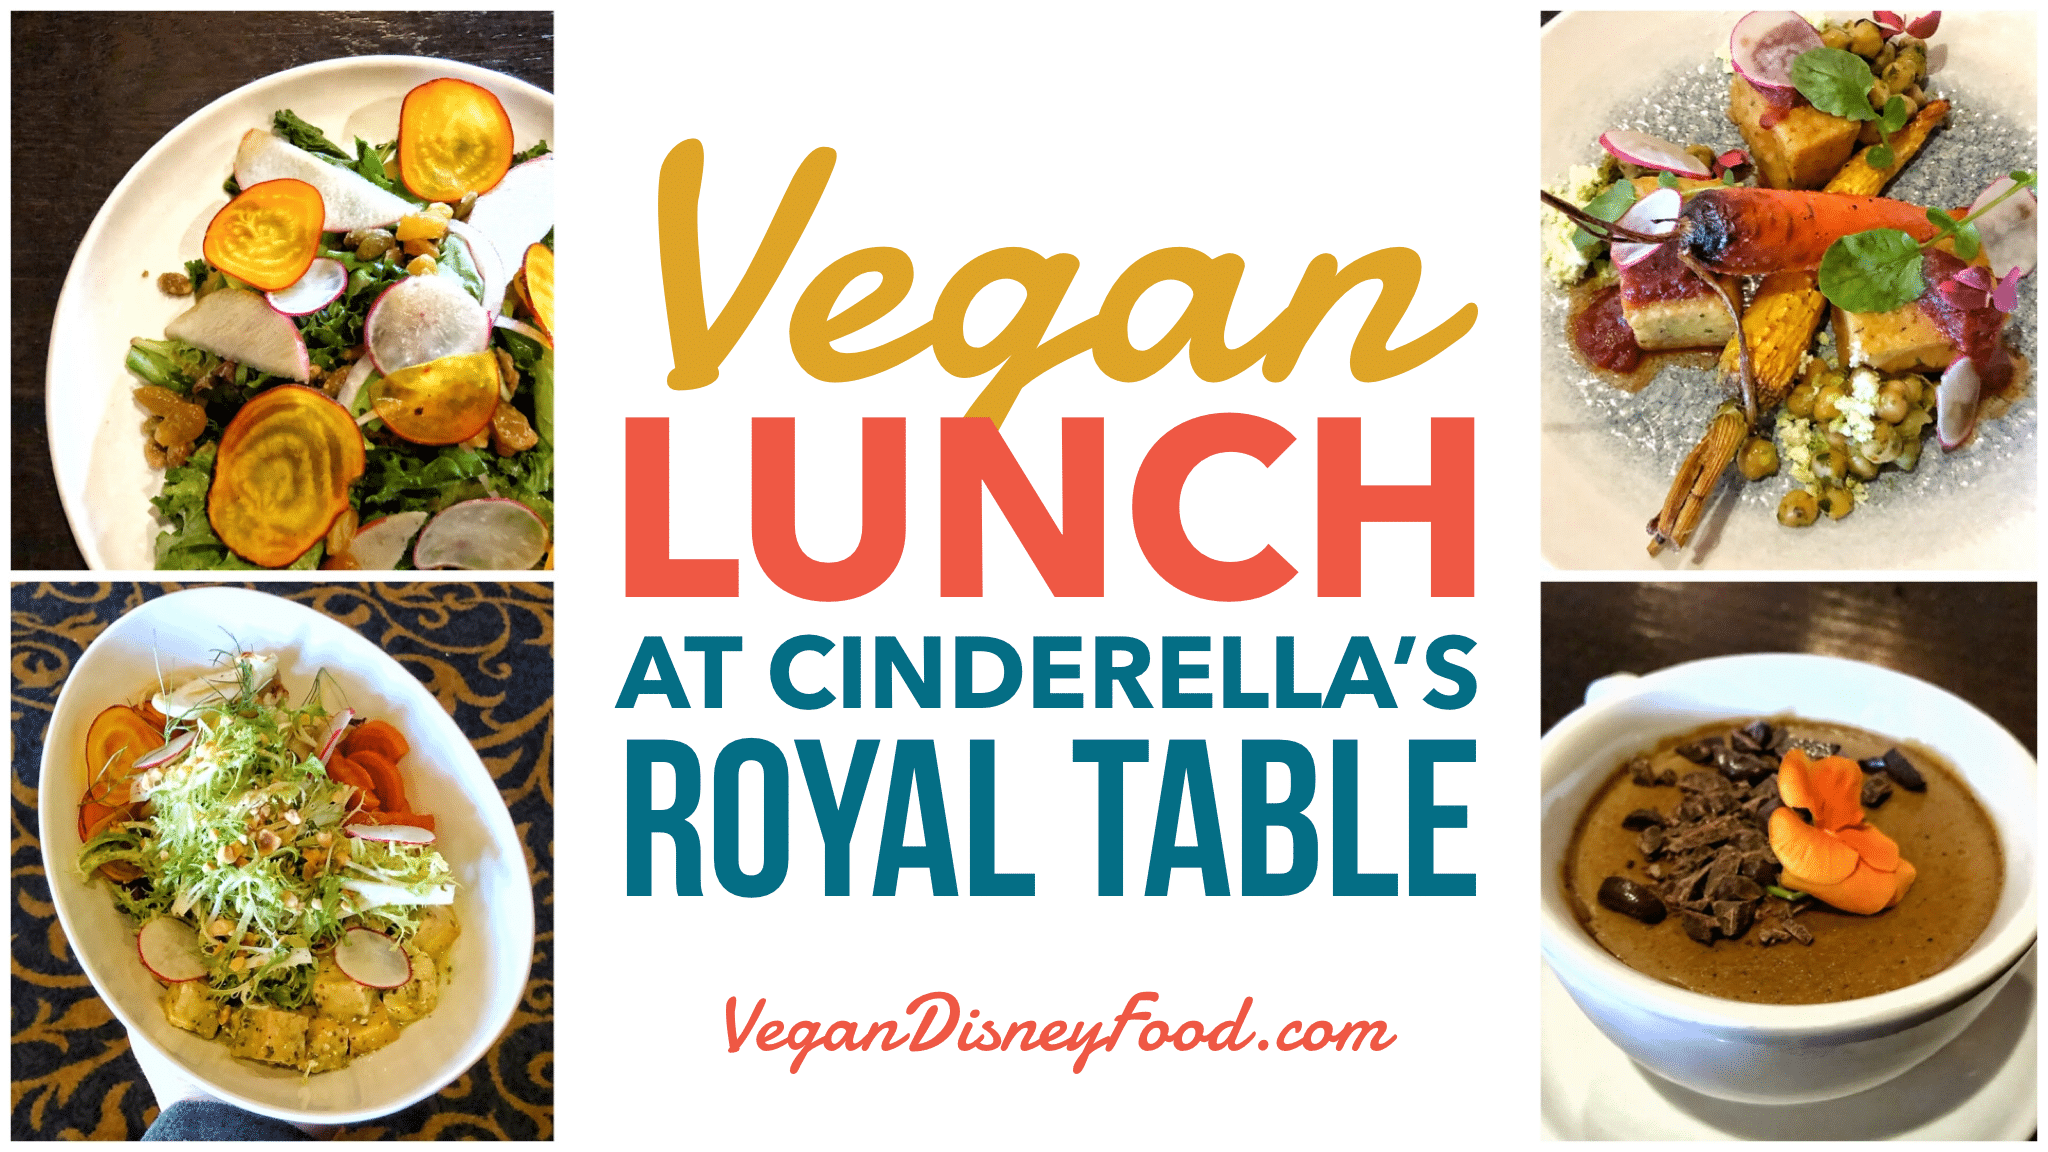 Cinderella's Royal Table Vegan Lunch Review in the Magic Kingdom at Walt Disney World